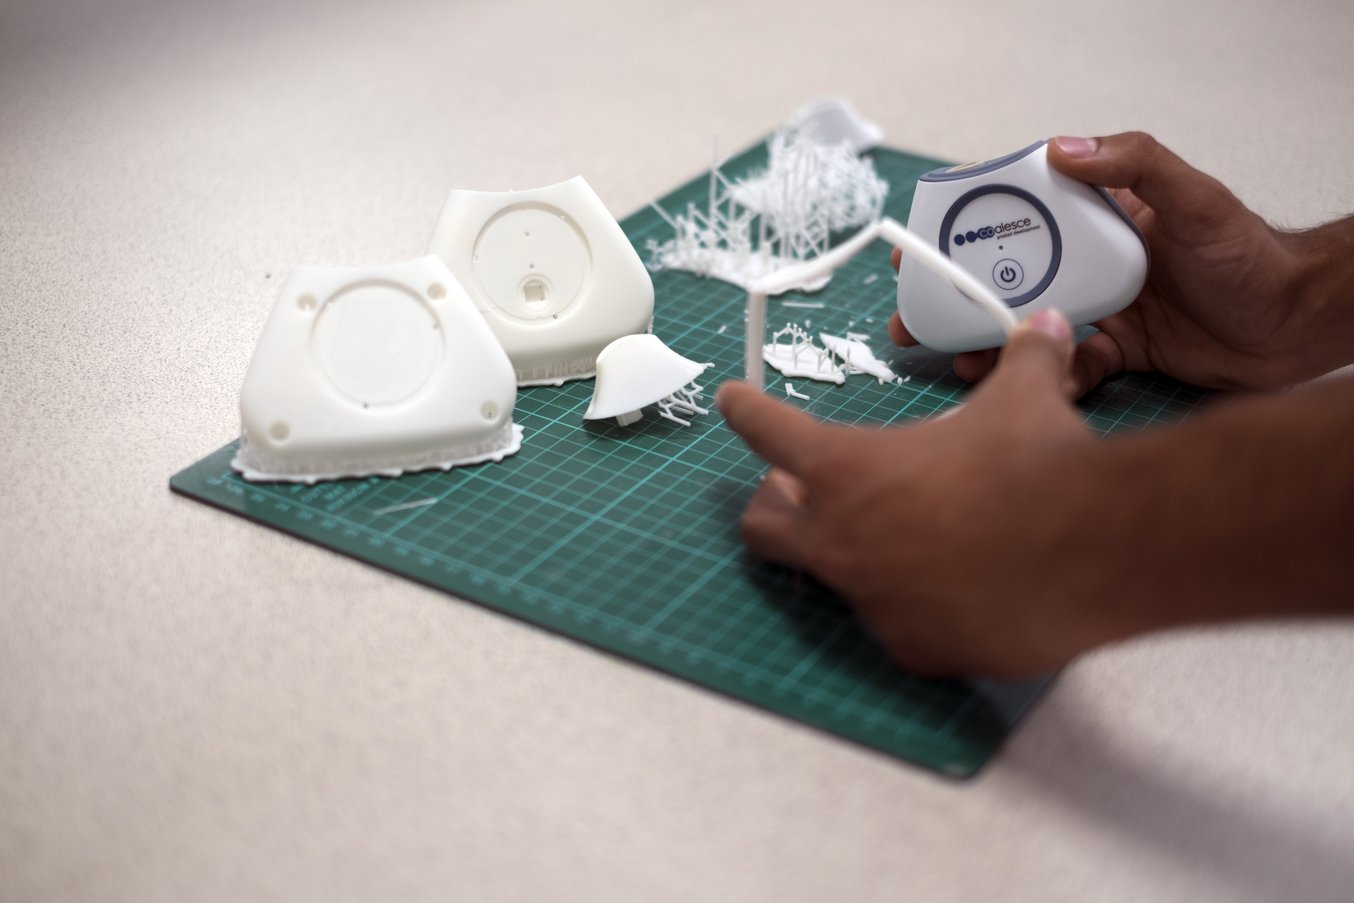 In the post-processing phase, Chhabildas removes the supports and prepares the 3D printed parts for priming, painting, and assembly.